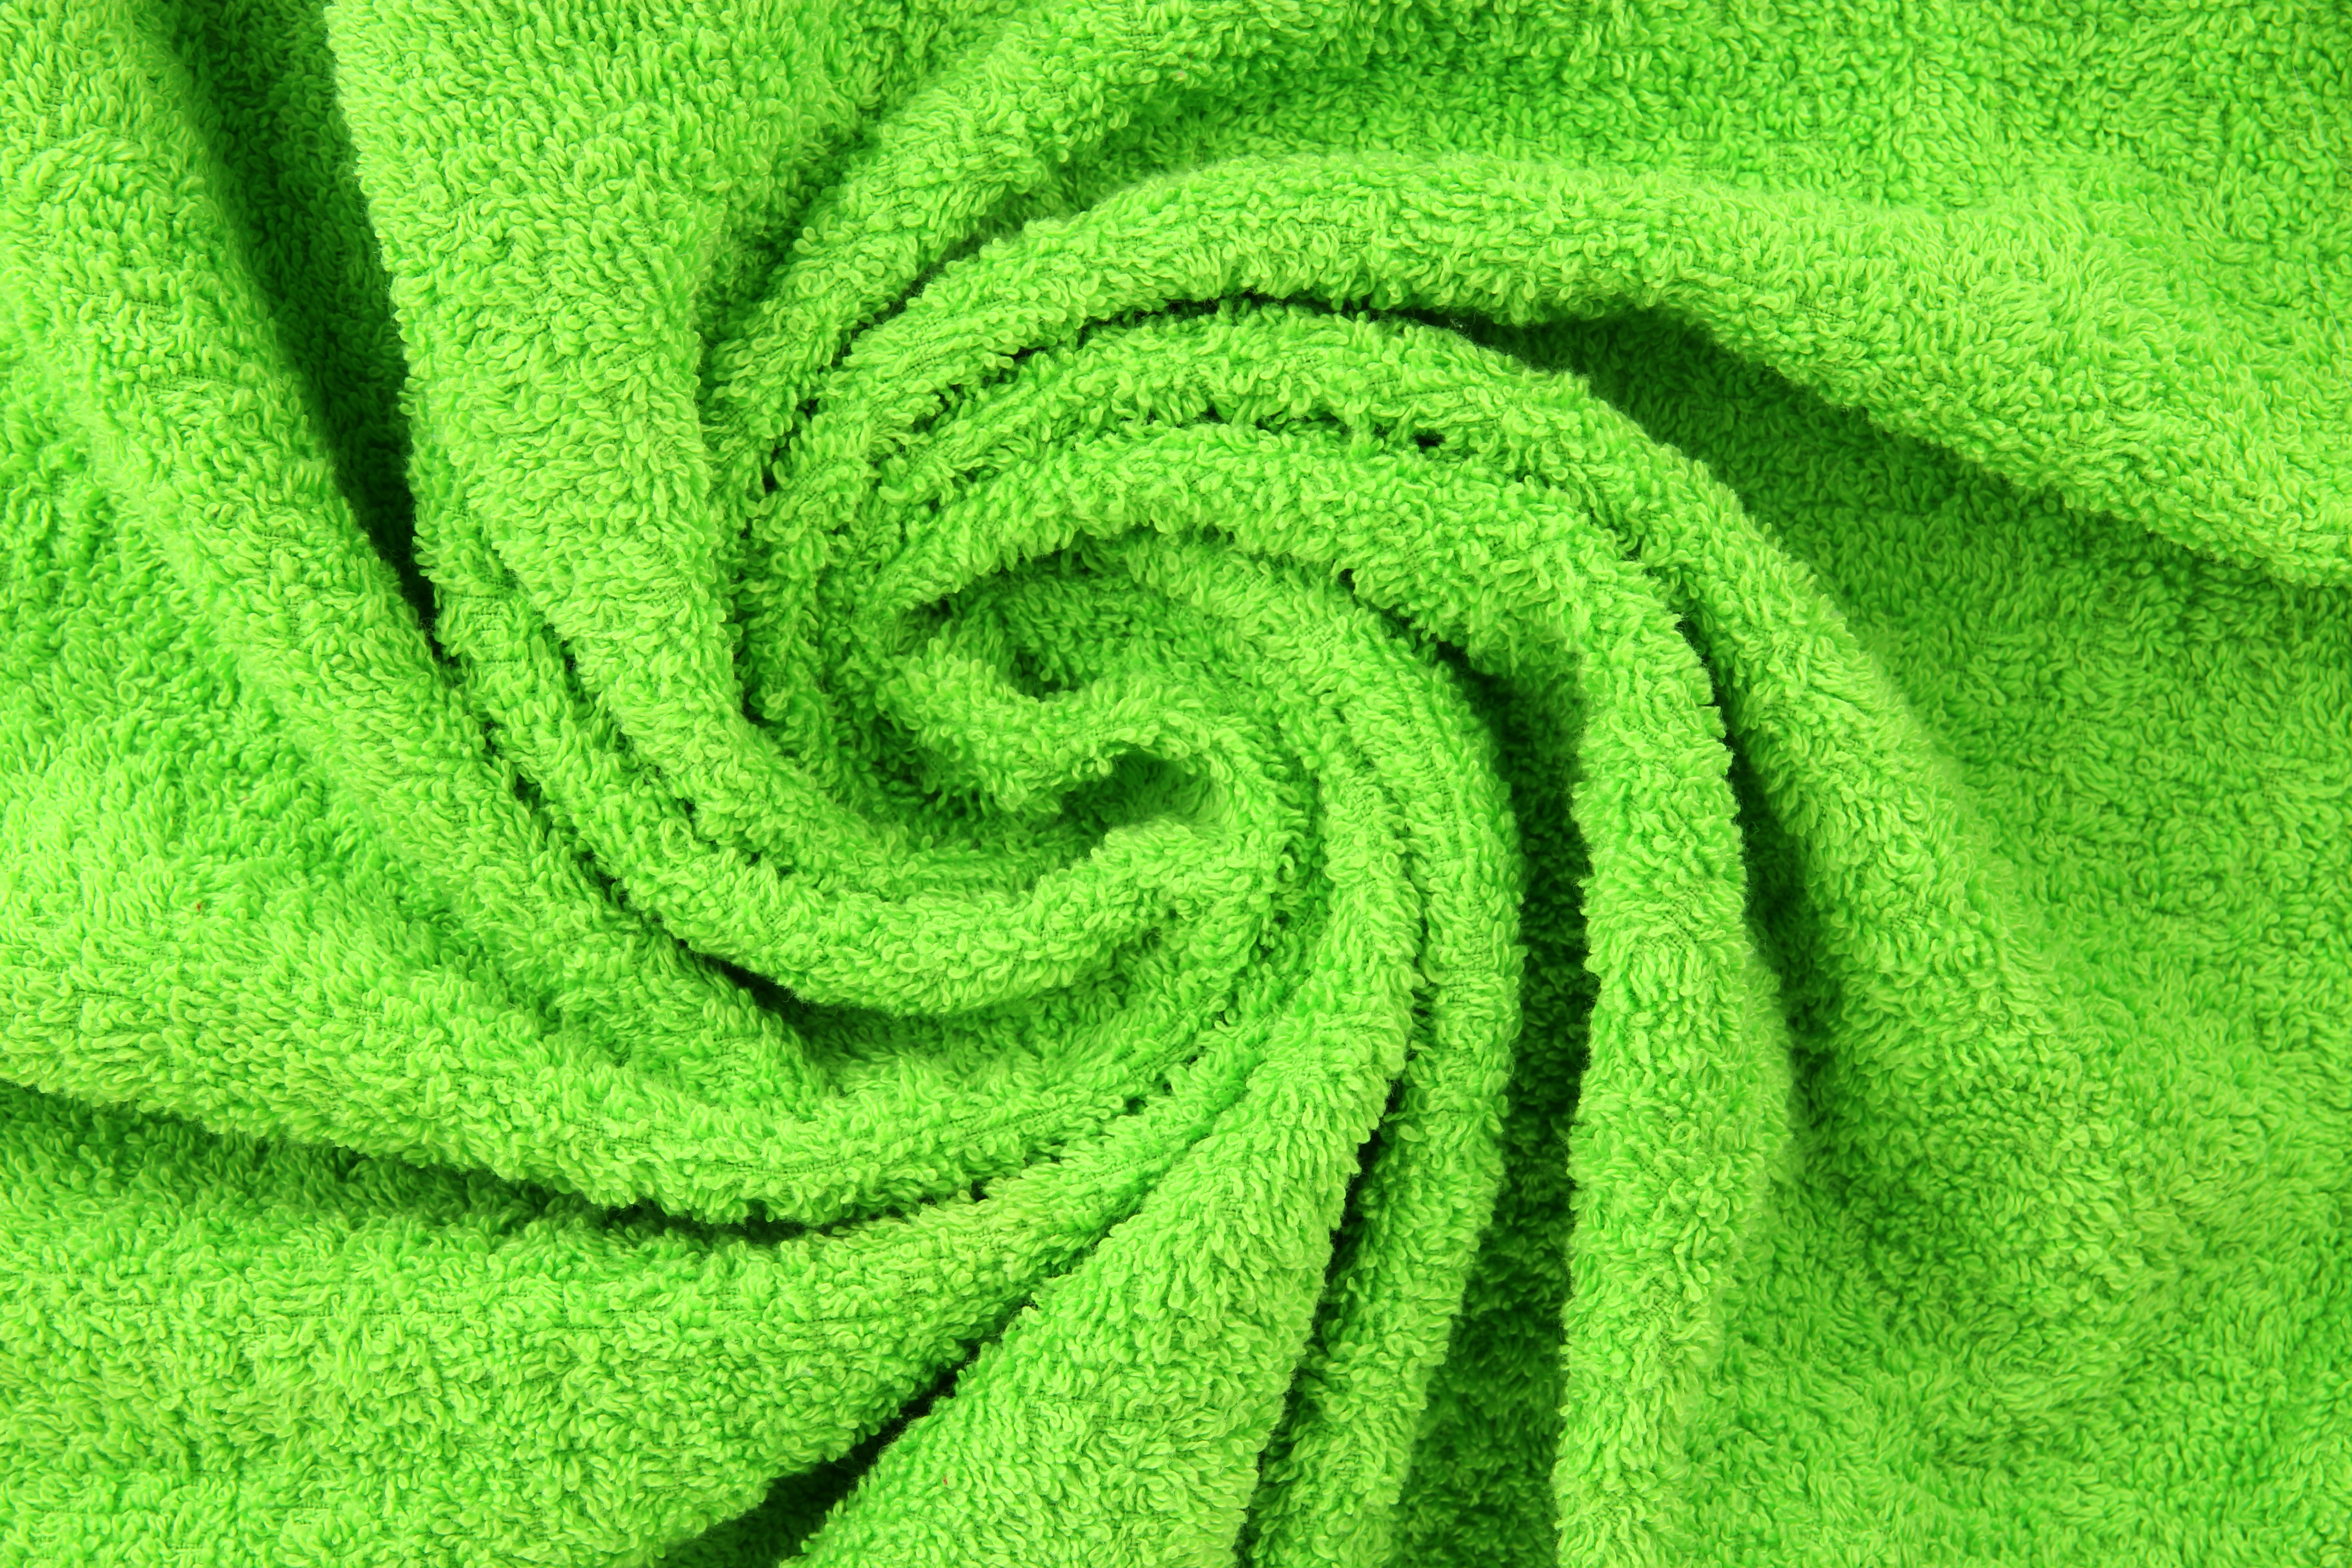 Pantone dyed terry cotton towel.